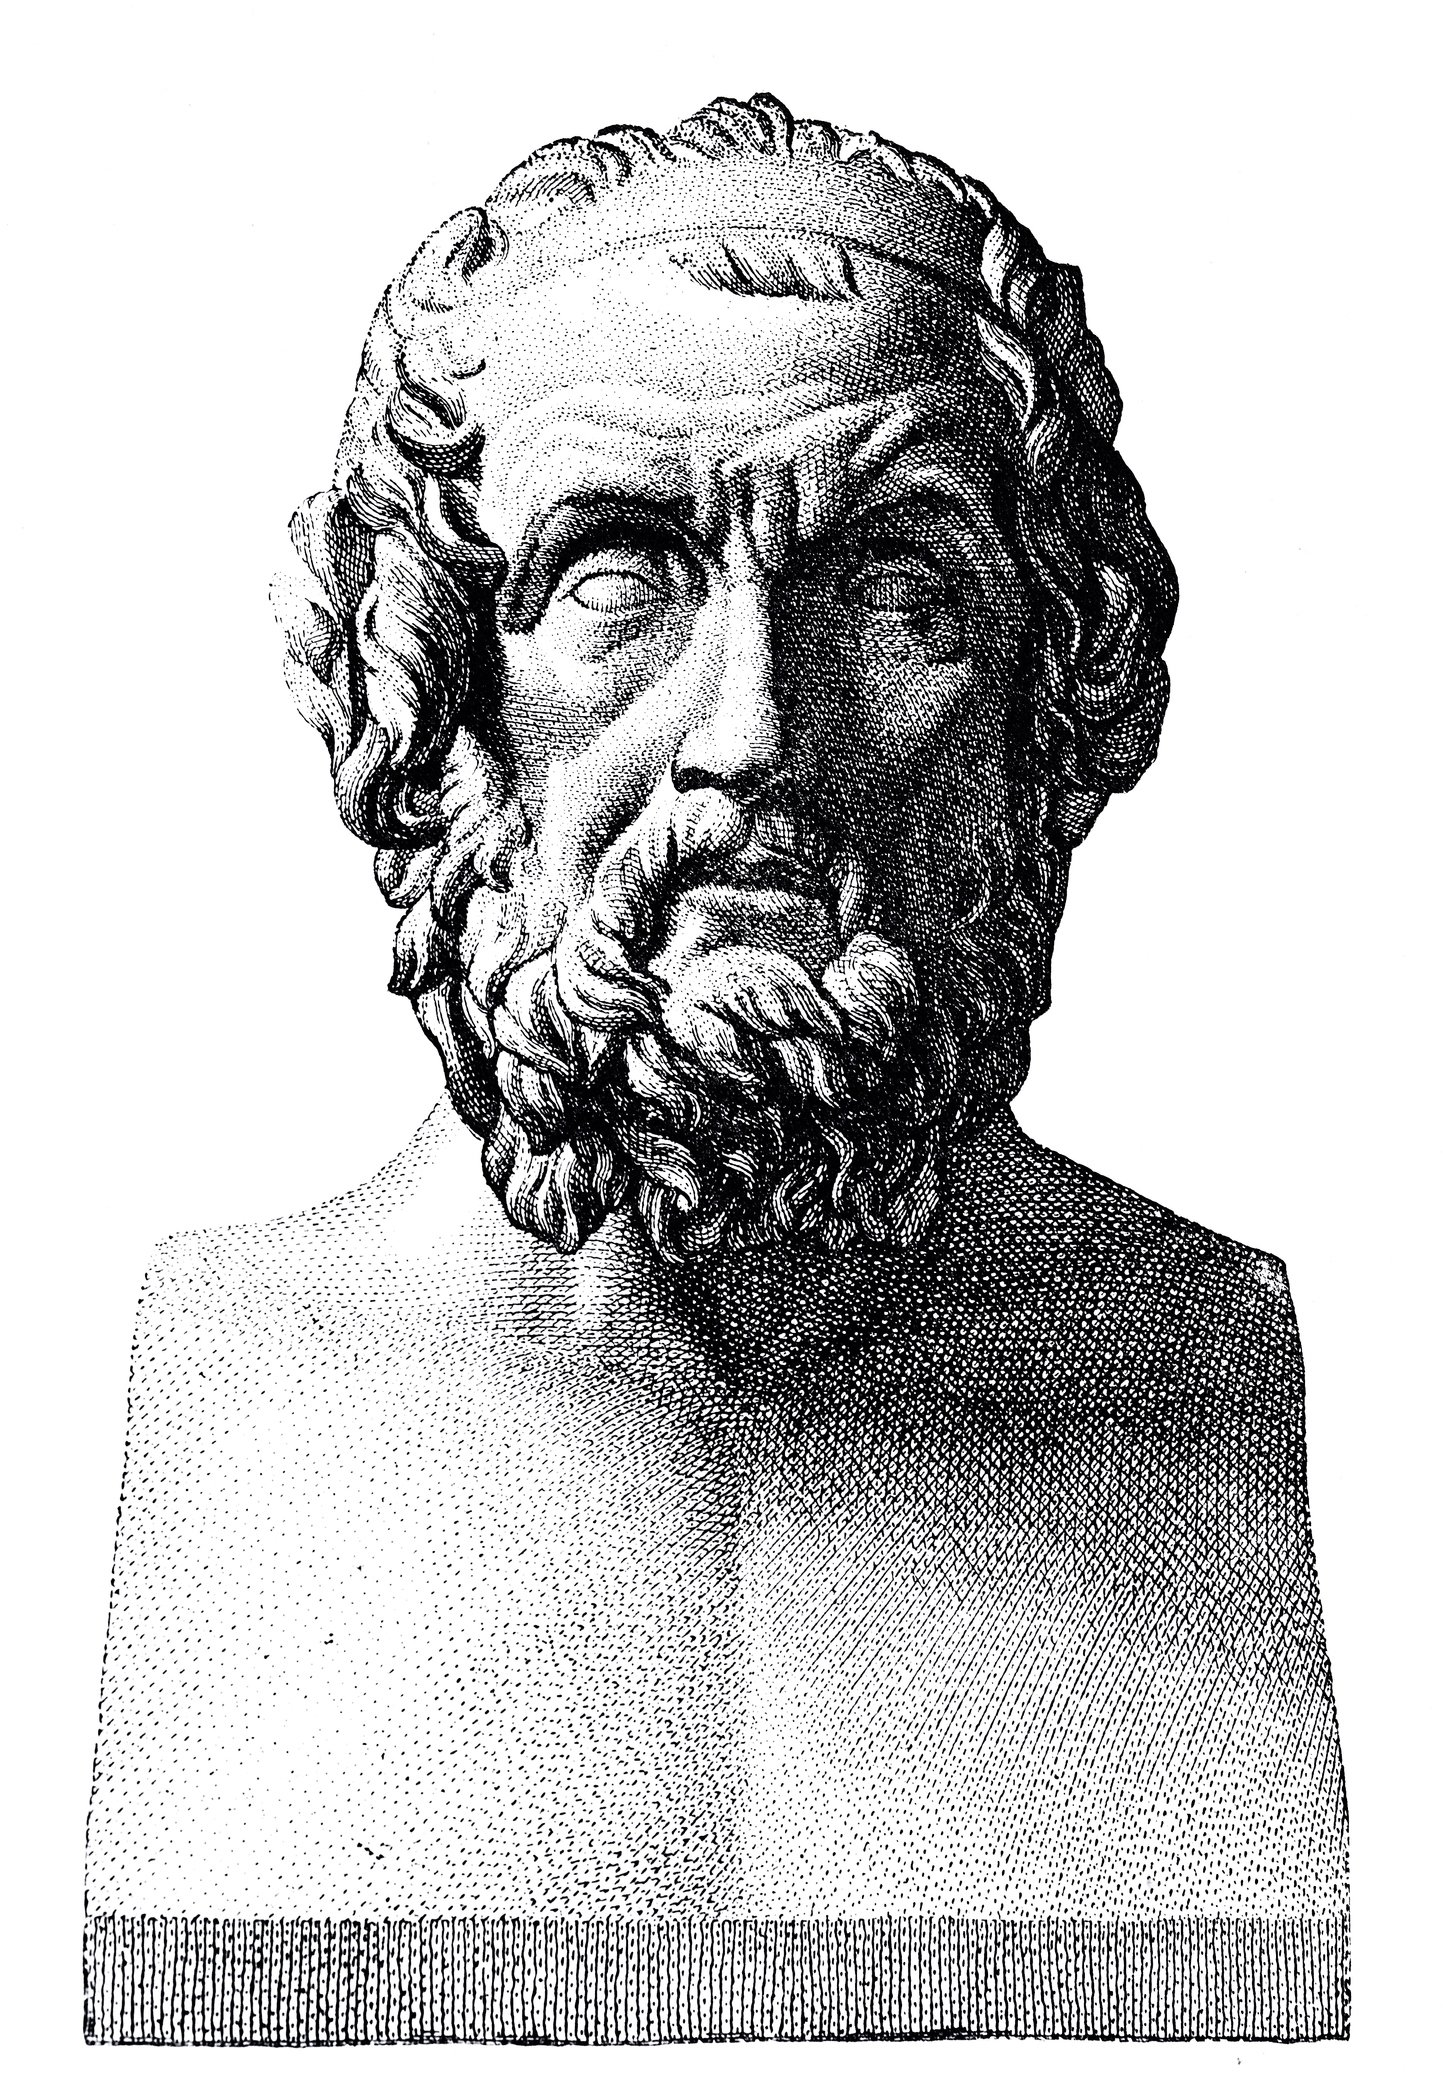 The bust of philosopher Homer, the presumed author of